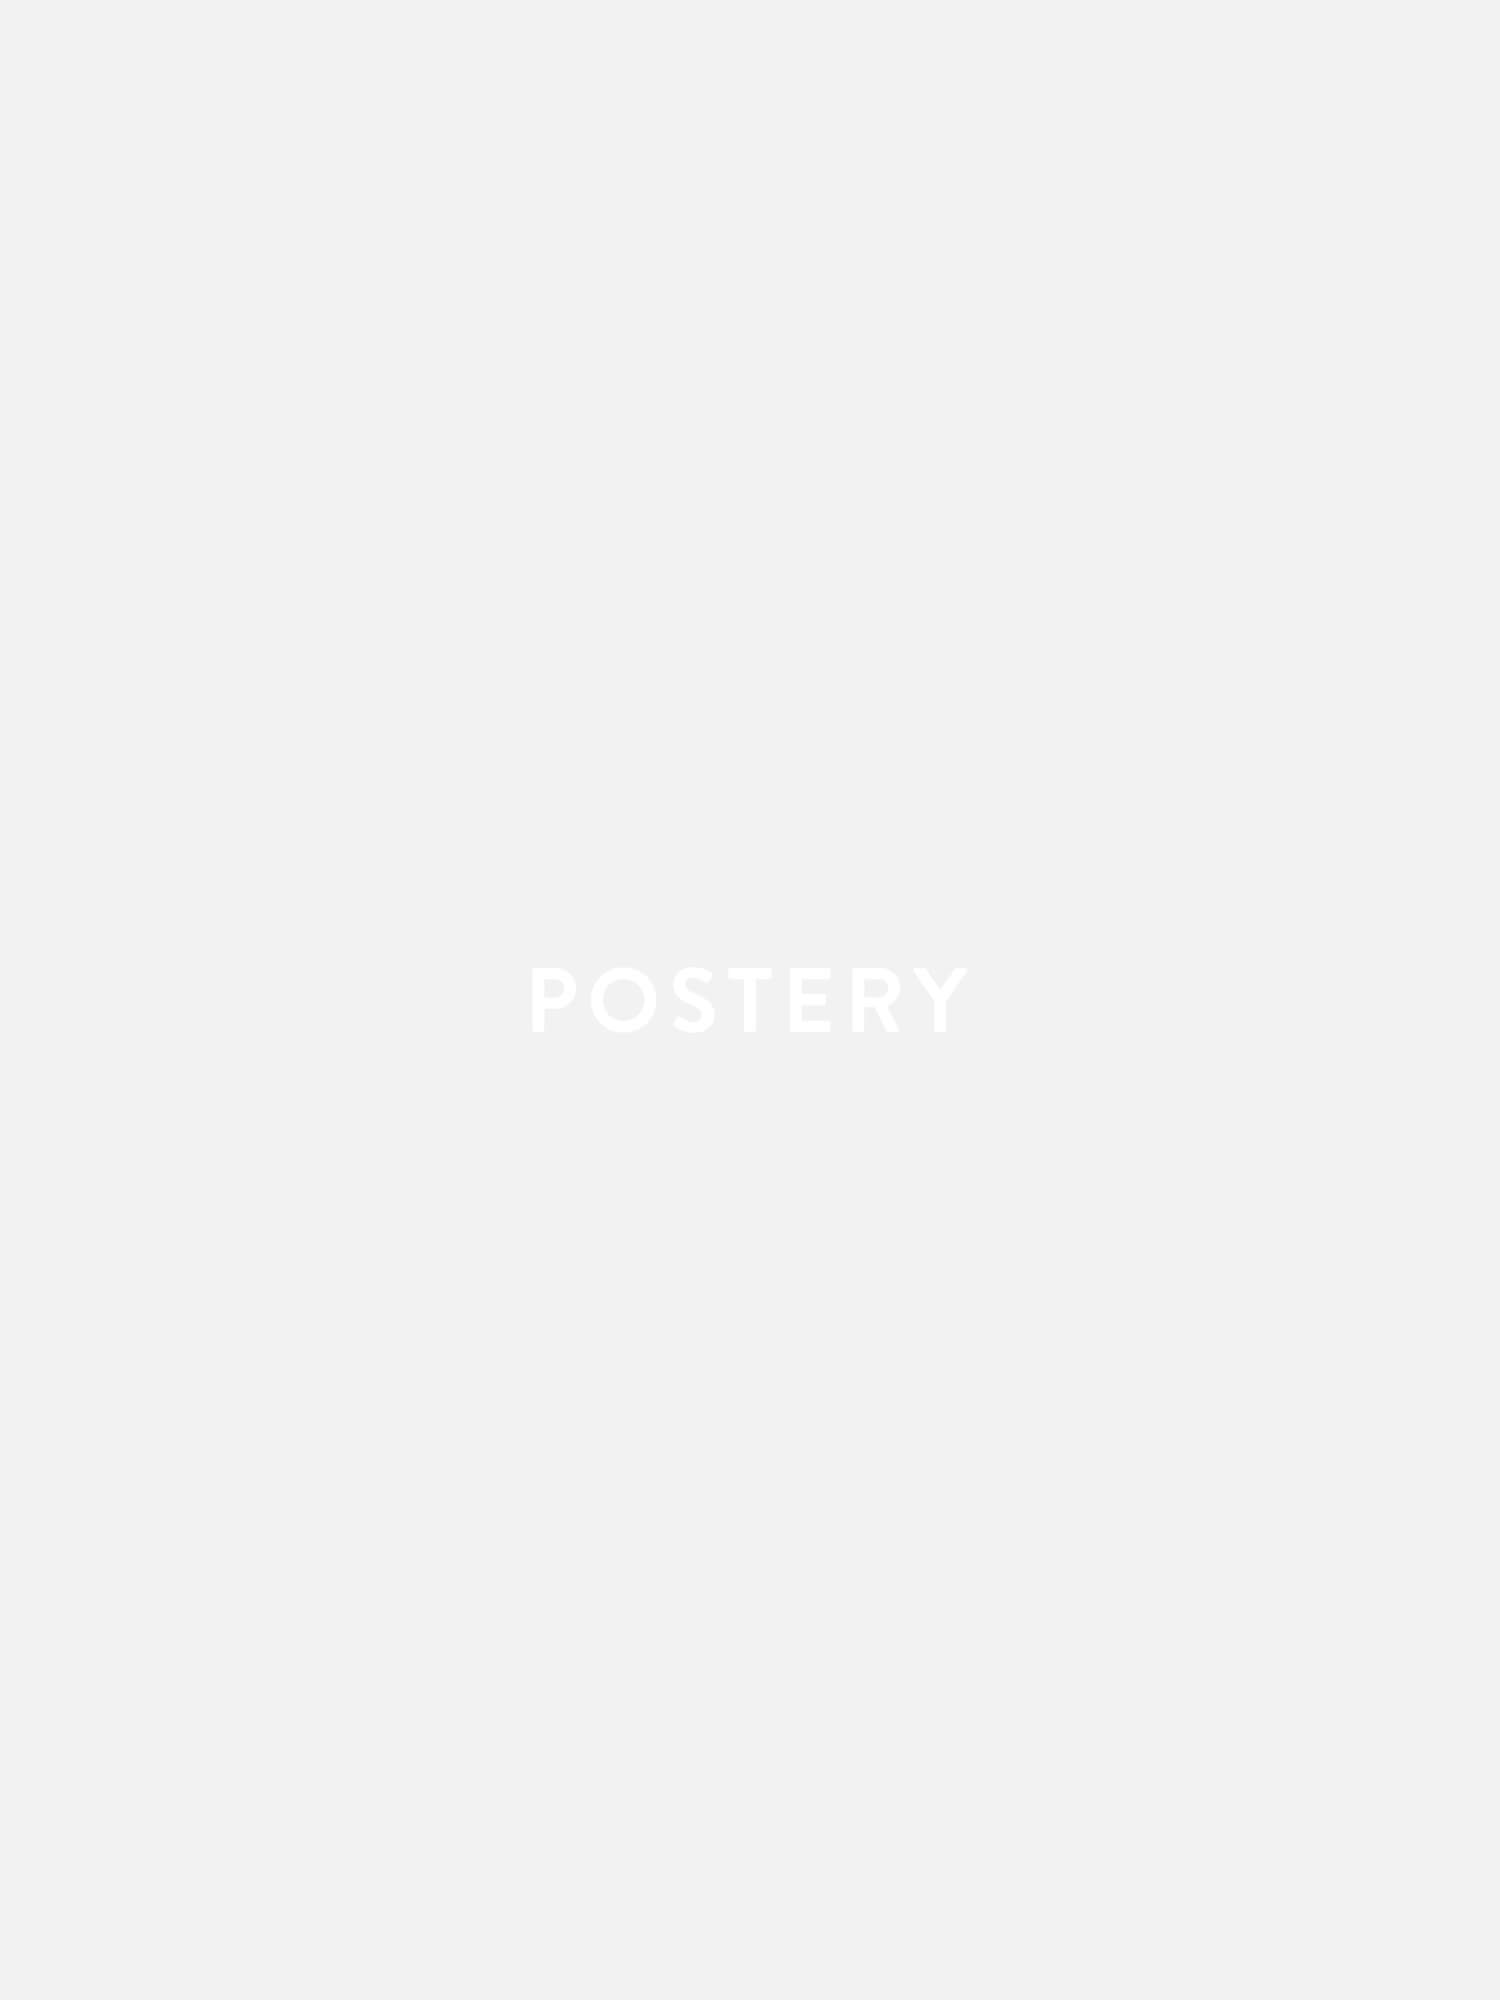 Irresistible Lips Poster